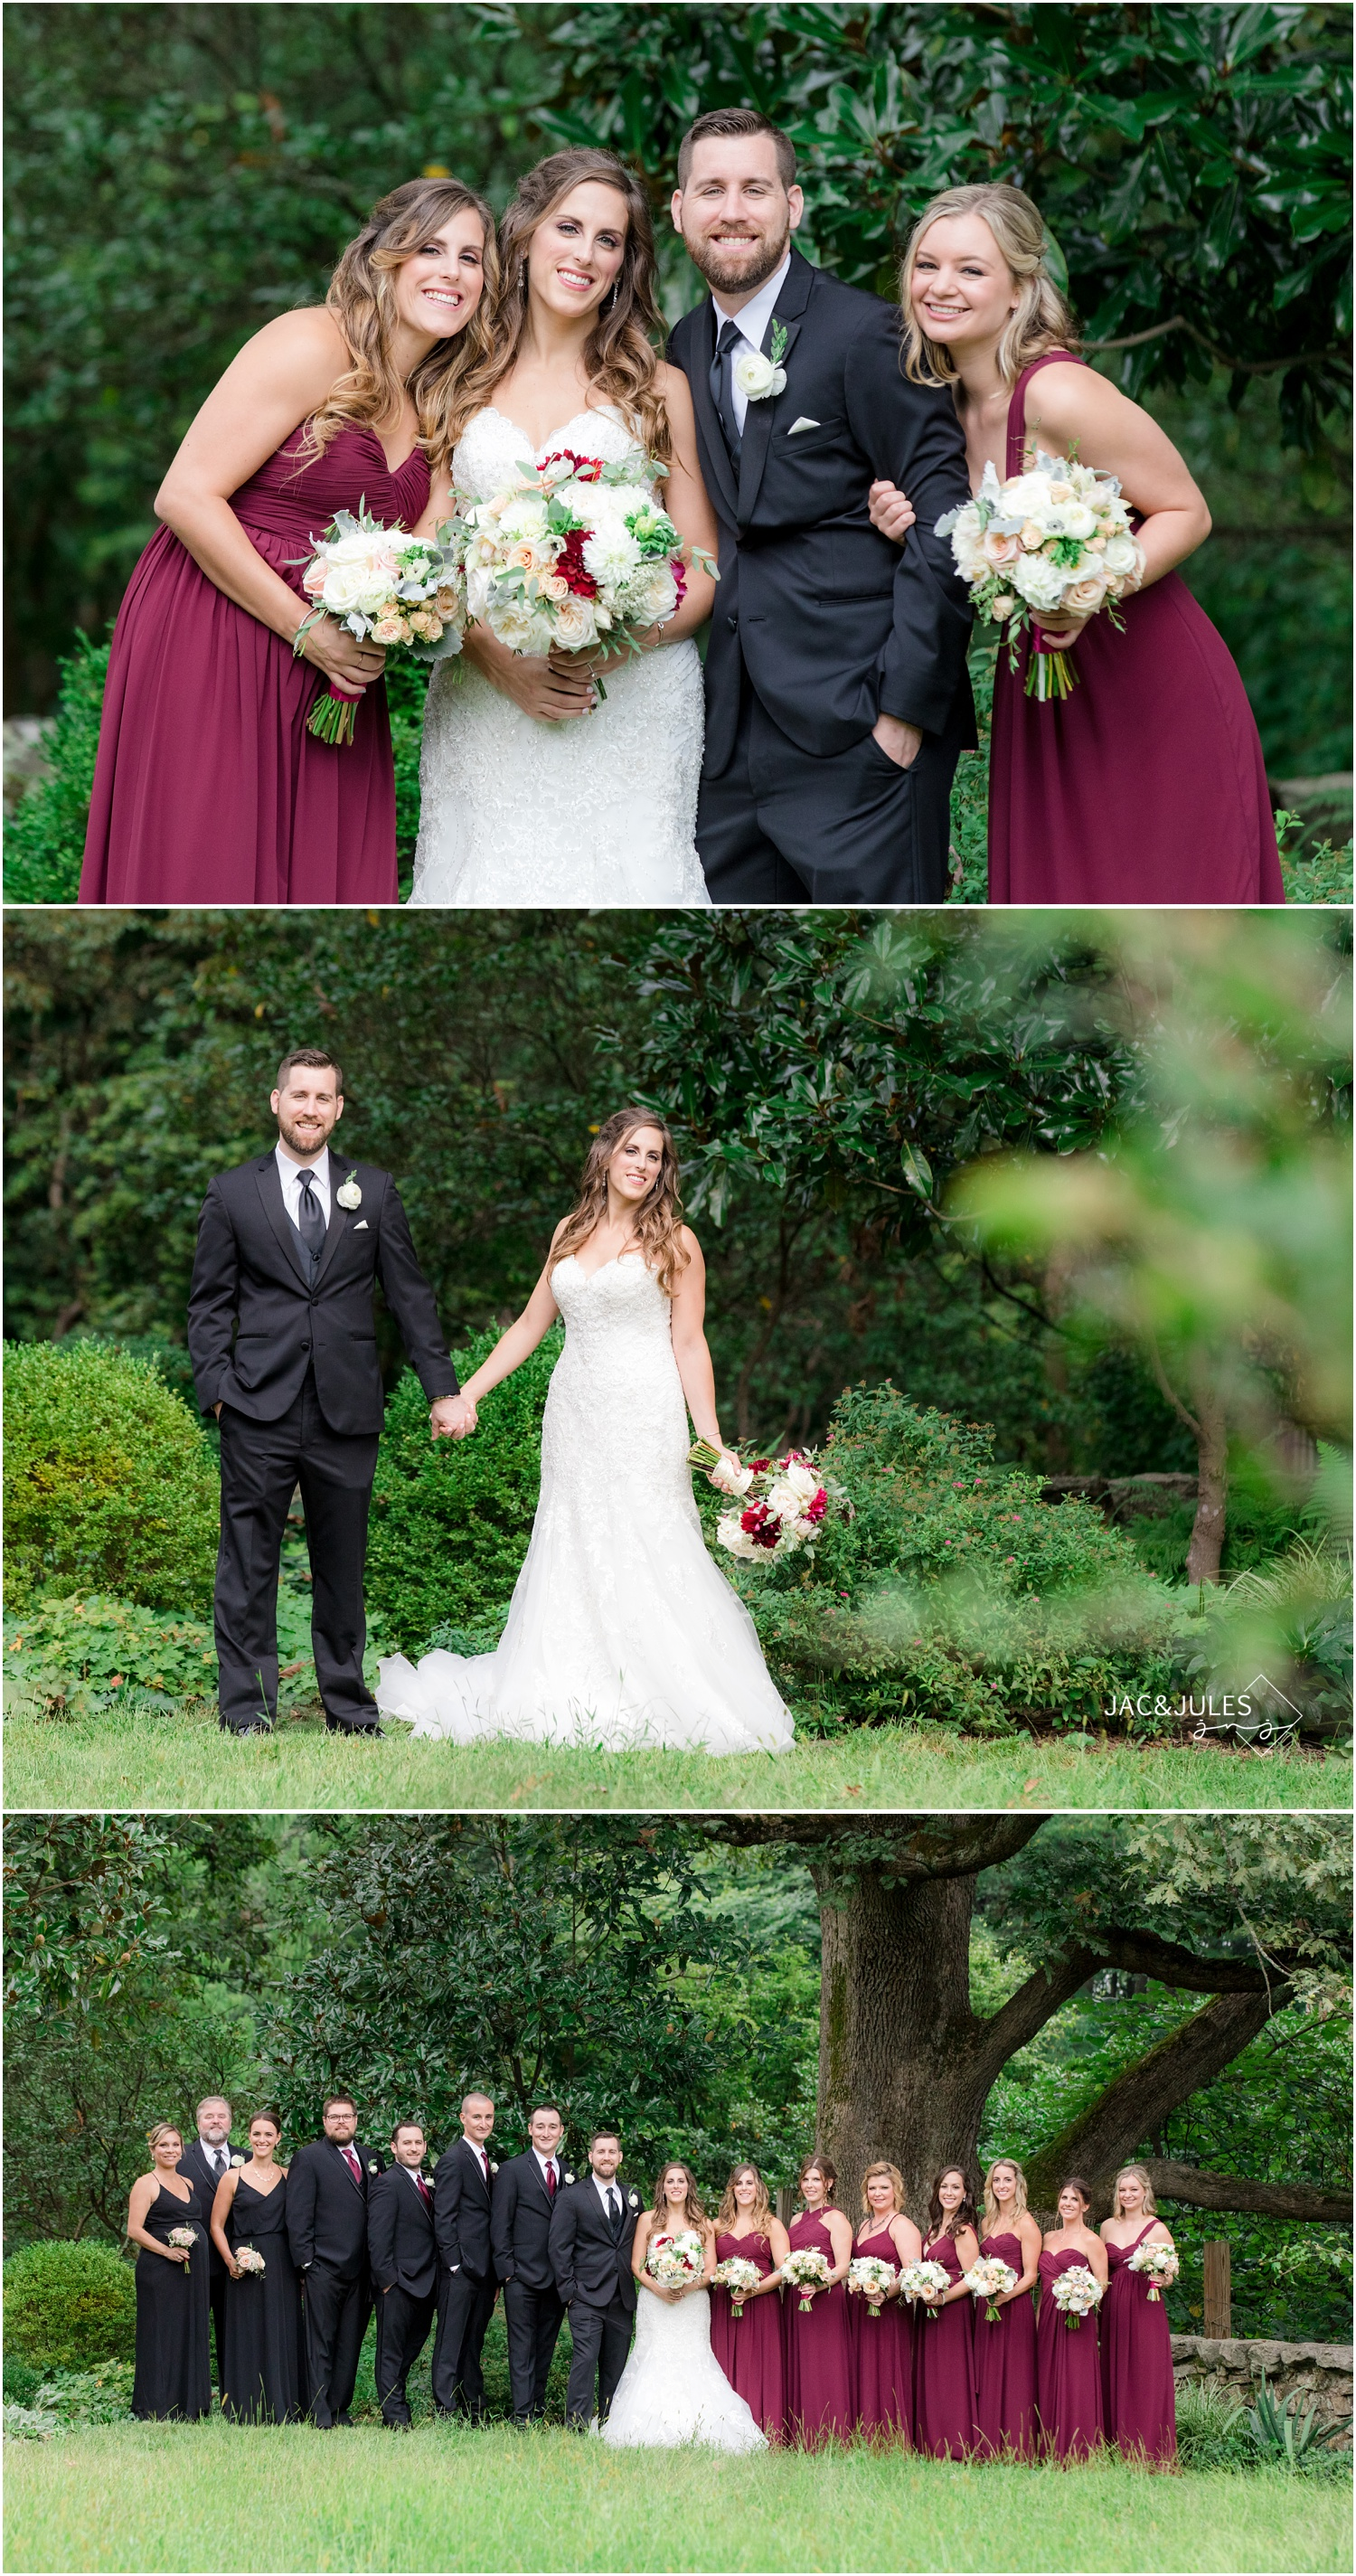 Family and Bridal Party photos at Cross Estate Gardens in Bernardsville, NJ.